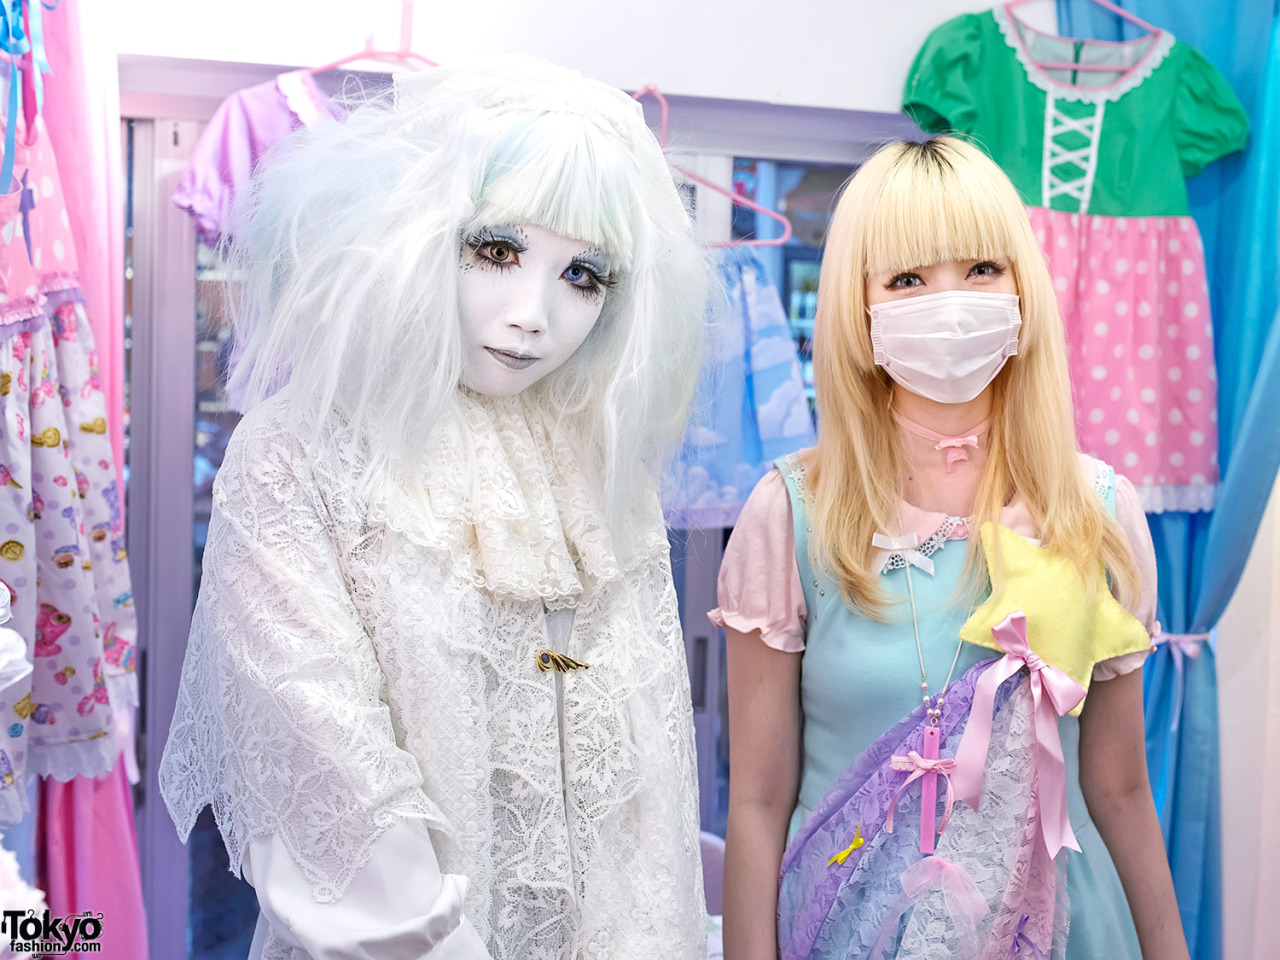 Japanese shironuri artist Minori & fairy kei designer Moco at the Strawberry Planet popup shop in Harajuku this weekend.